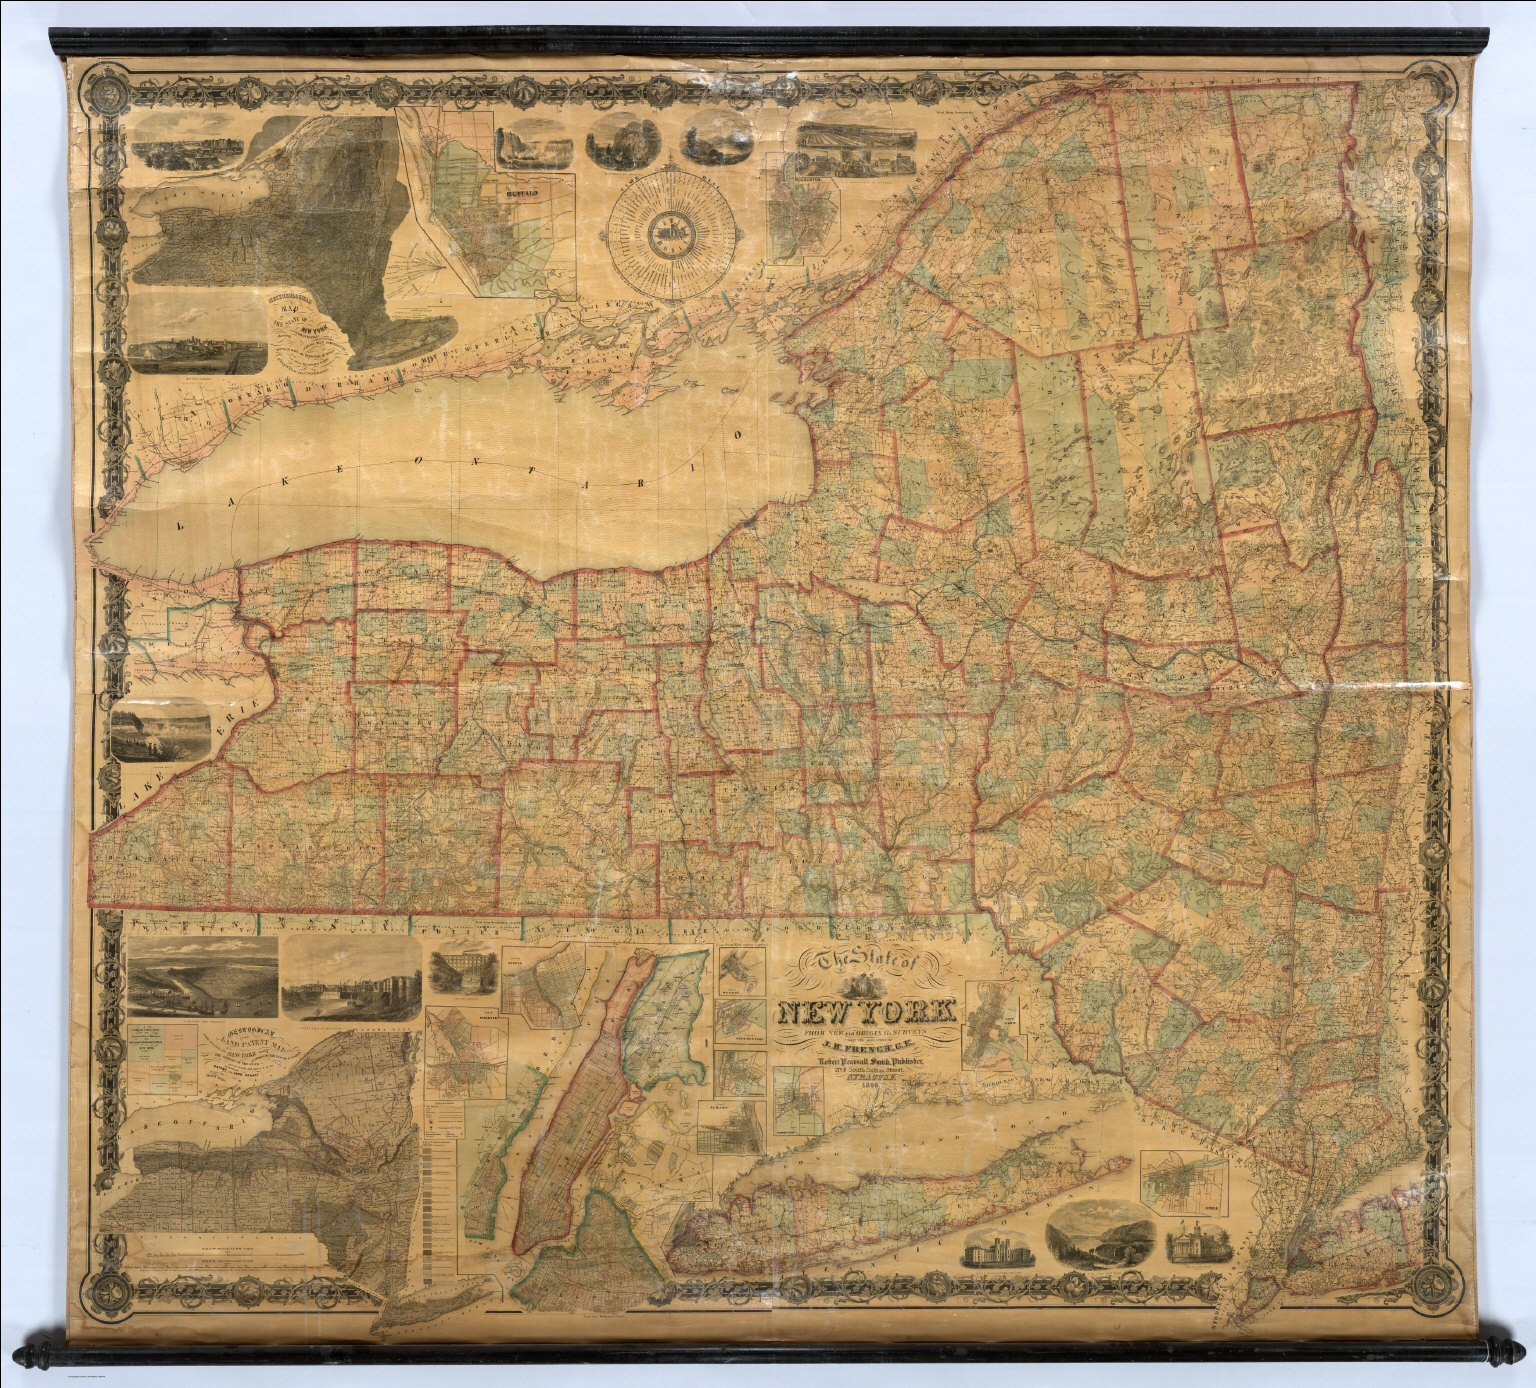 State of New York. - David Rumsey Historical Map Collection